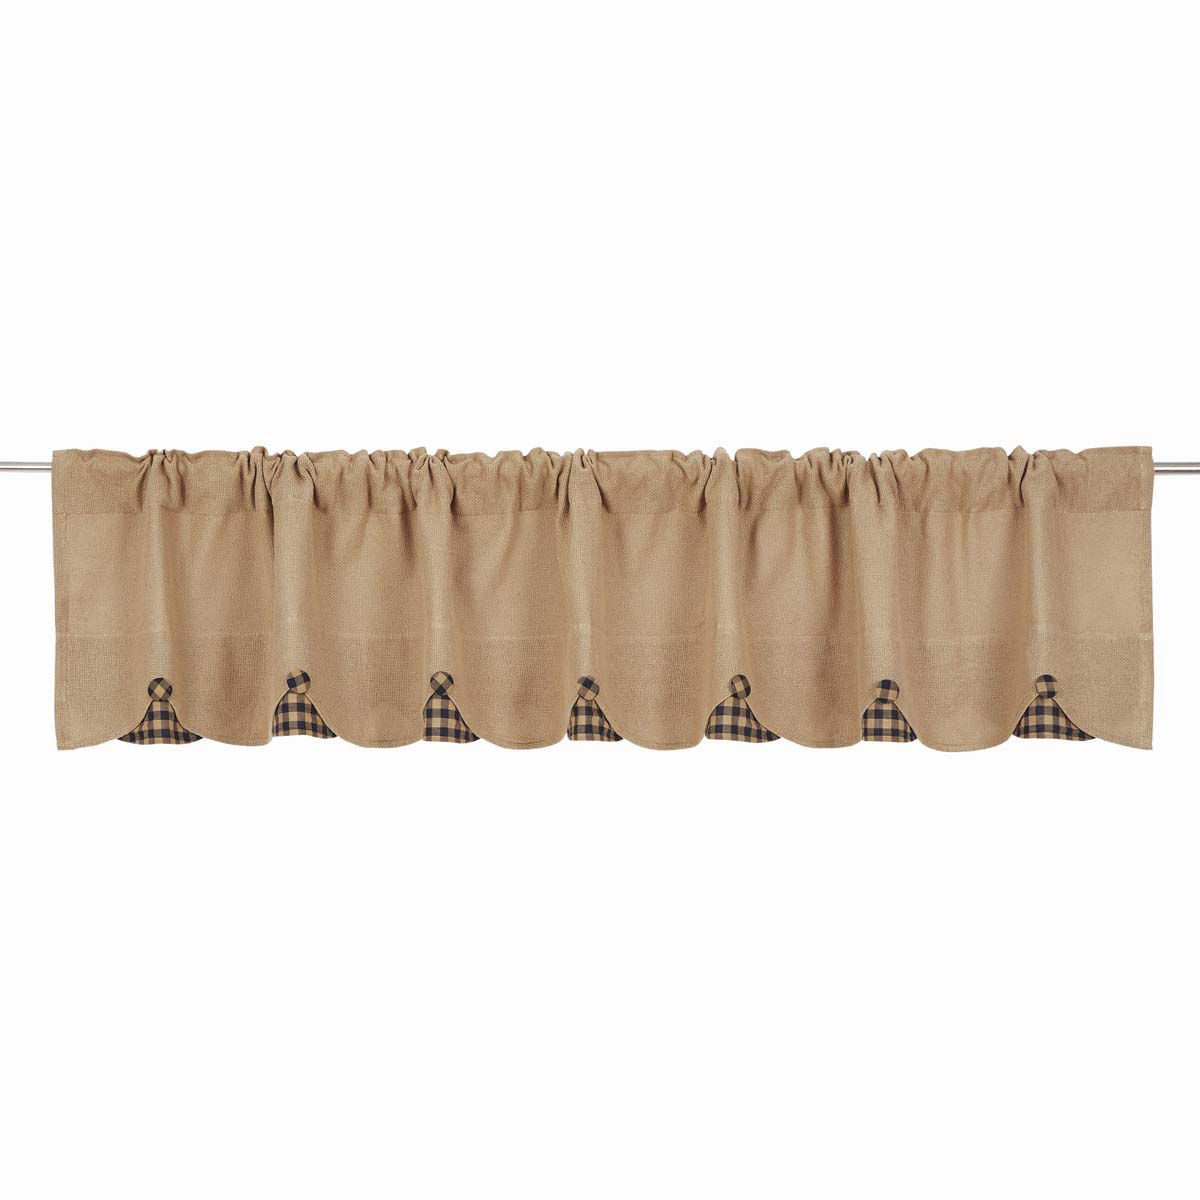 BURLAP NATURAL Valance w/Black Check - 16x90 - Country Farmhouse - VHC Brands